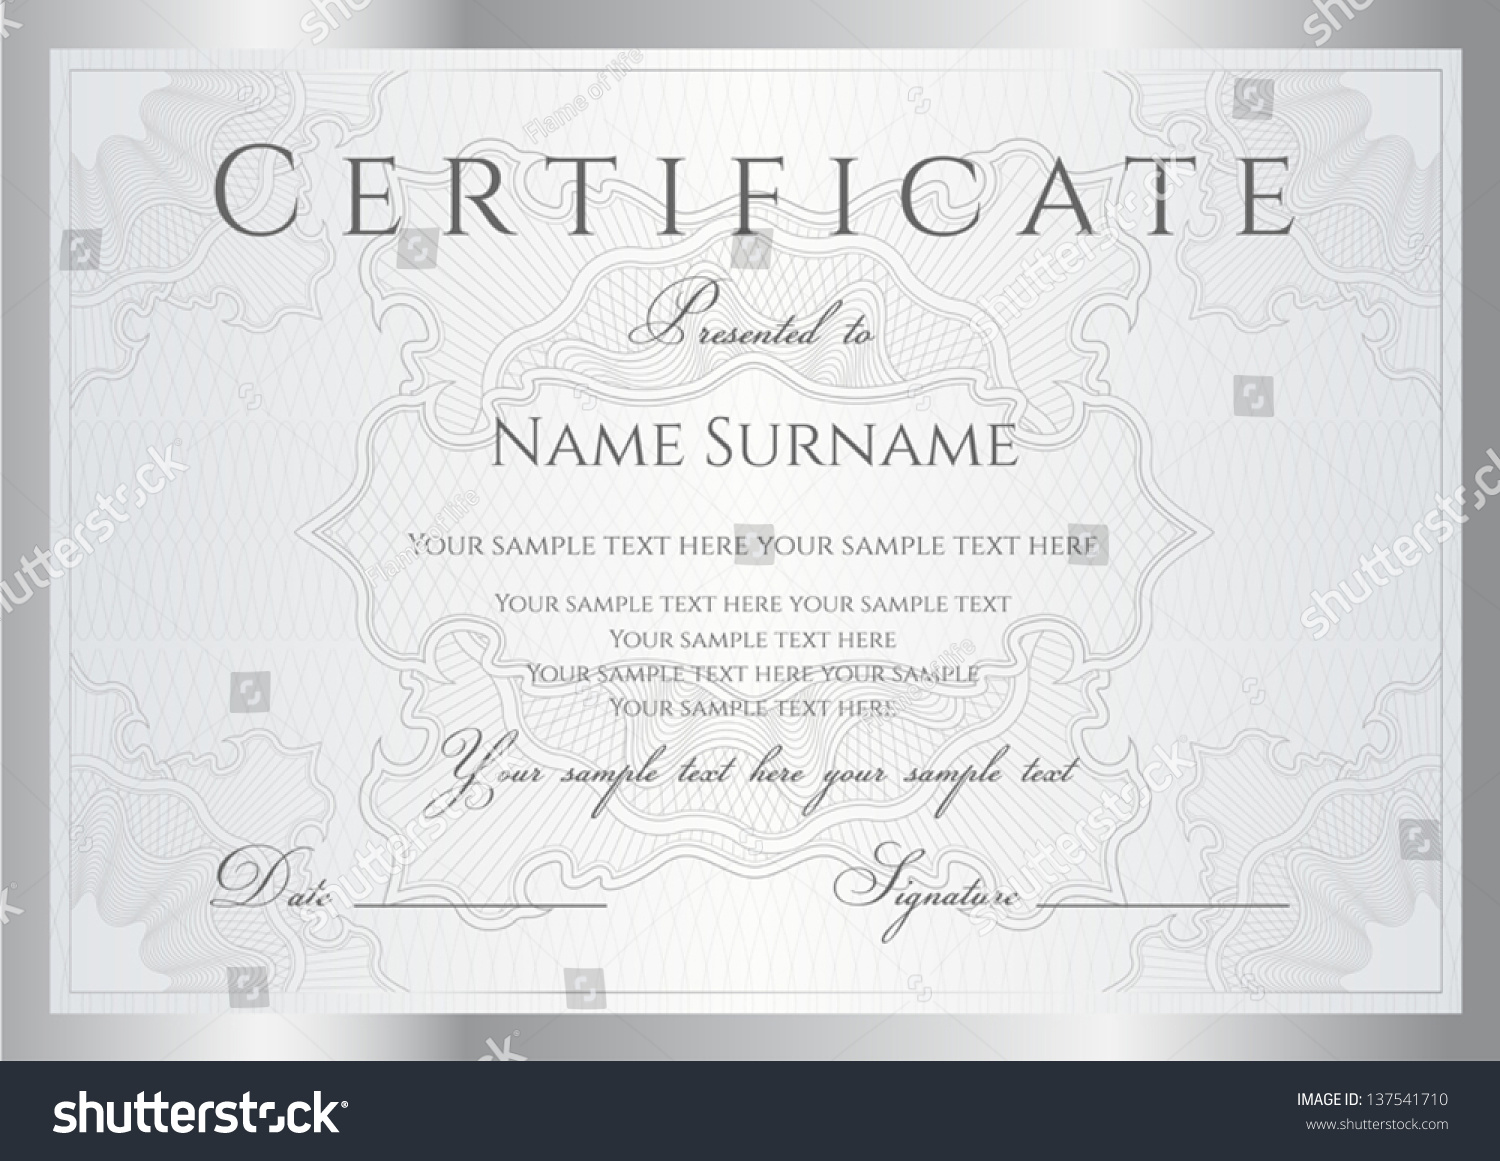 Horizontal Silver Certificate Completion Template Guilloche – Template Certificate of Completion